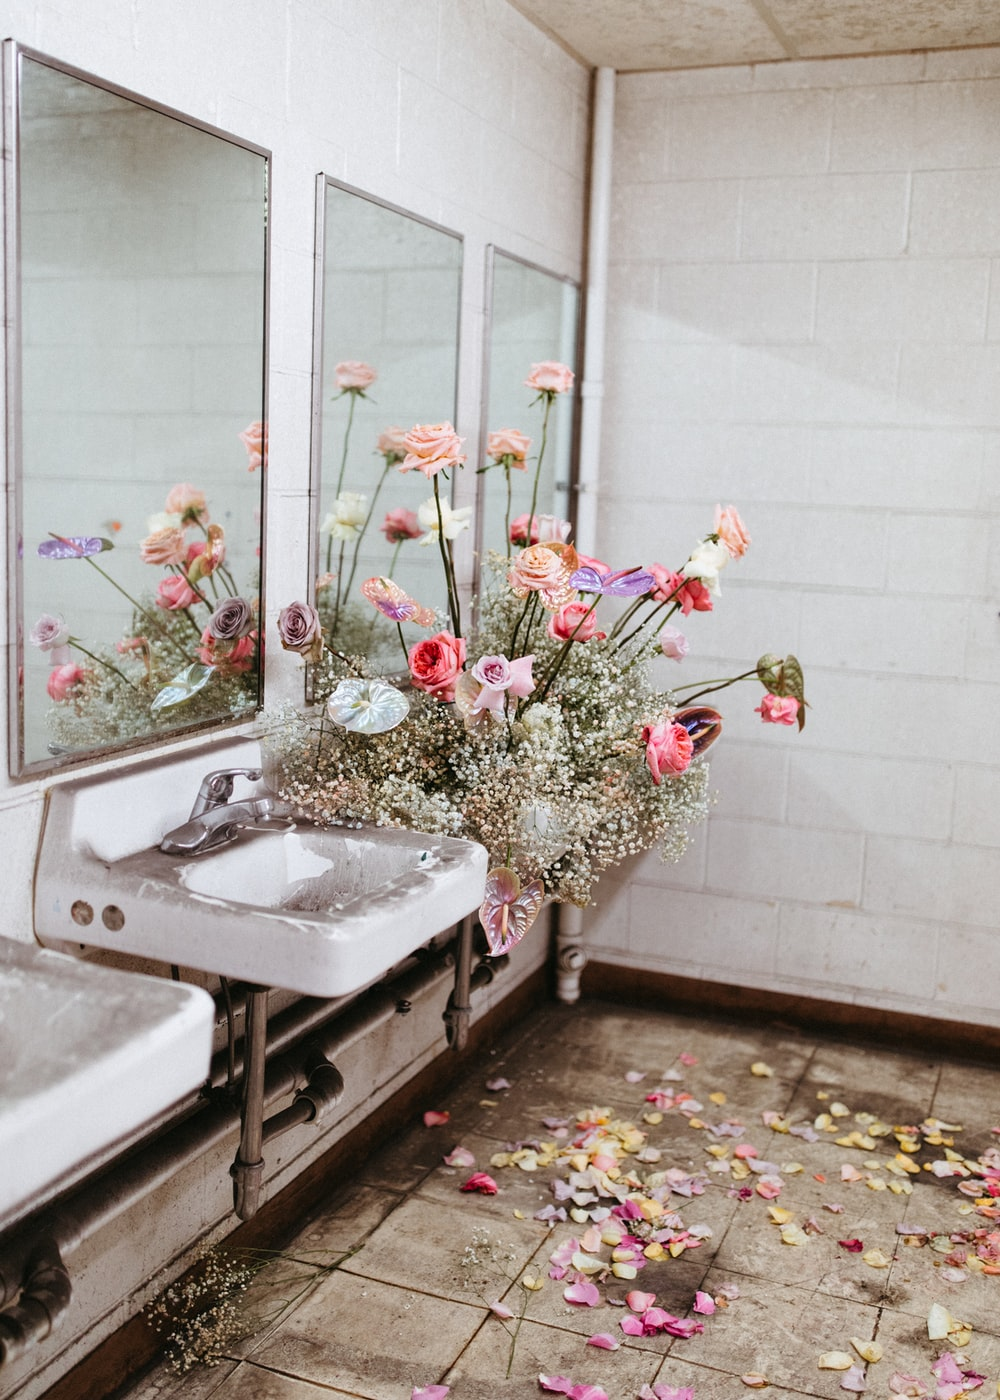 white ceramic sink with pink and white flowers